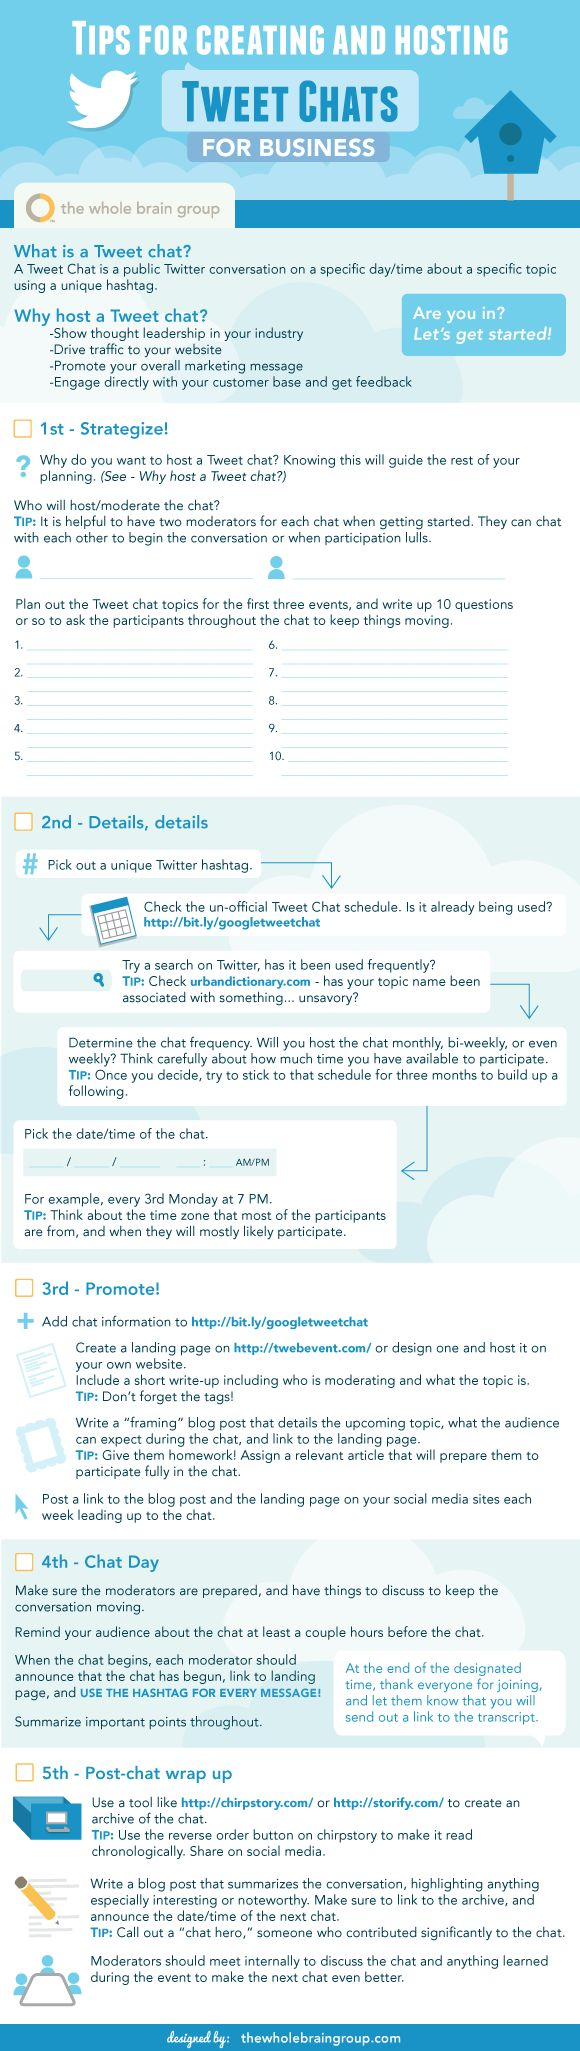 Tweet Chat Checklist for Businesses